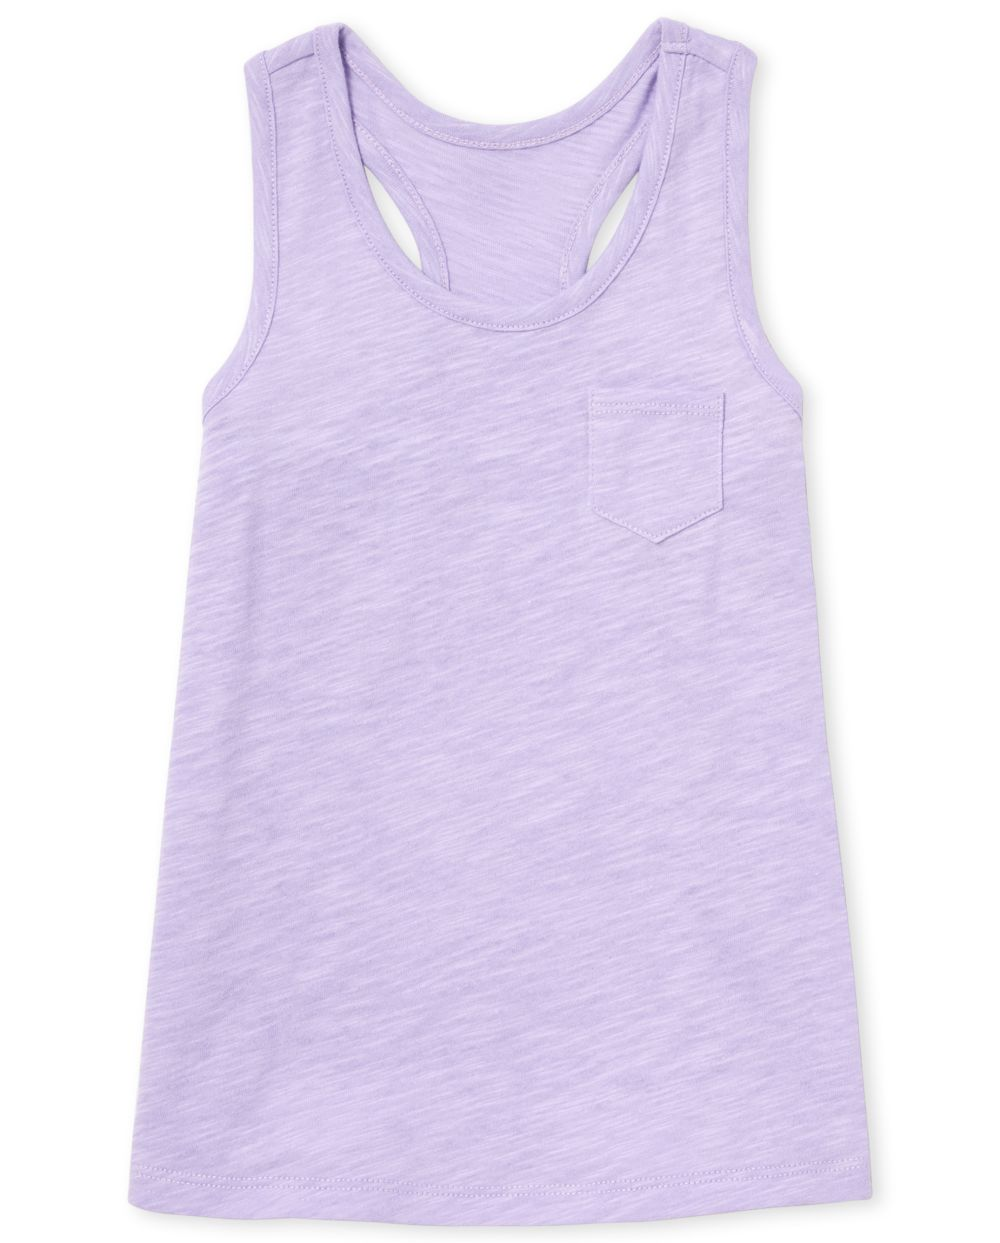 Girls Mix And Match Pocket Racerback Tank Top